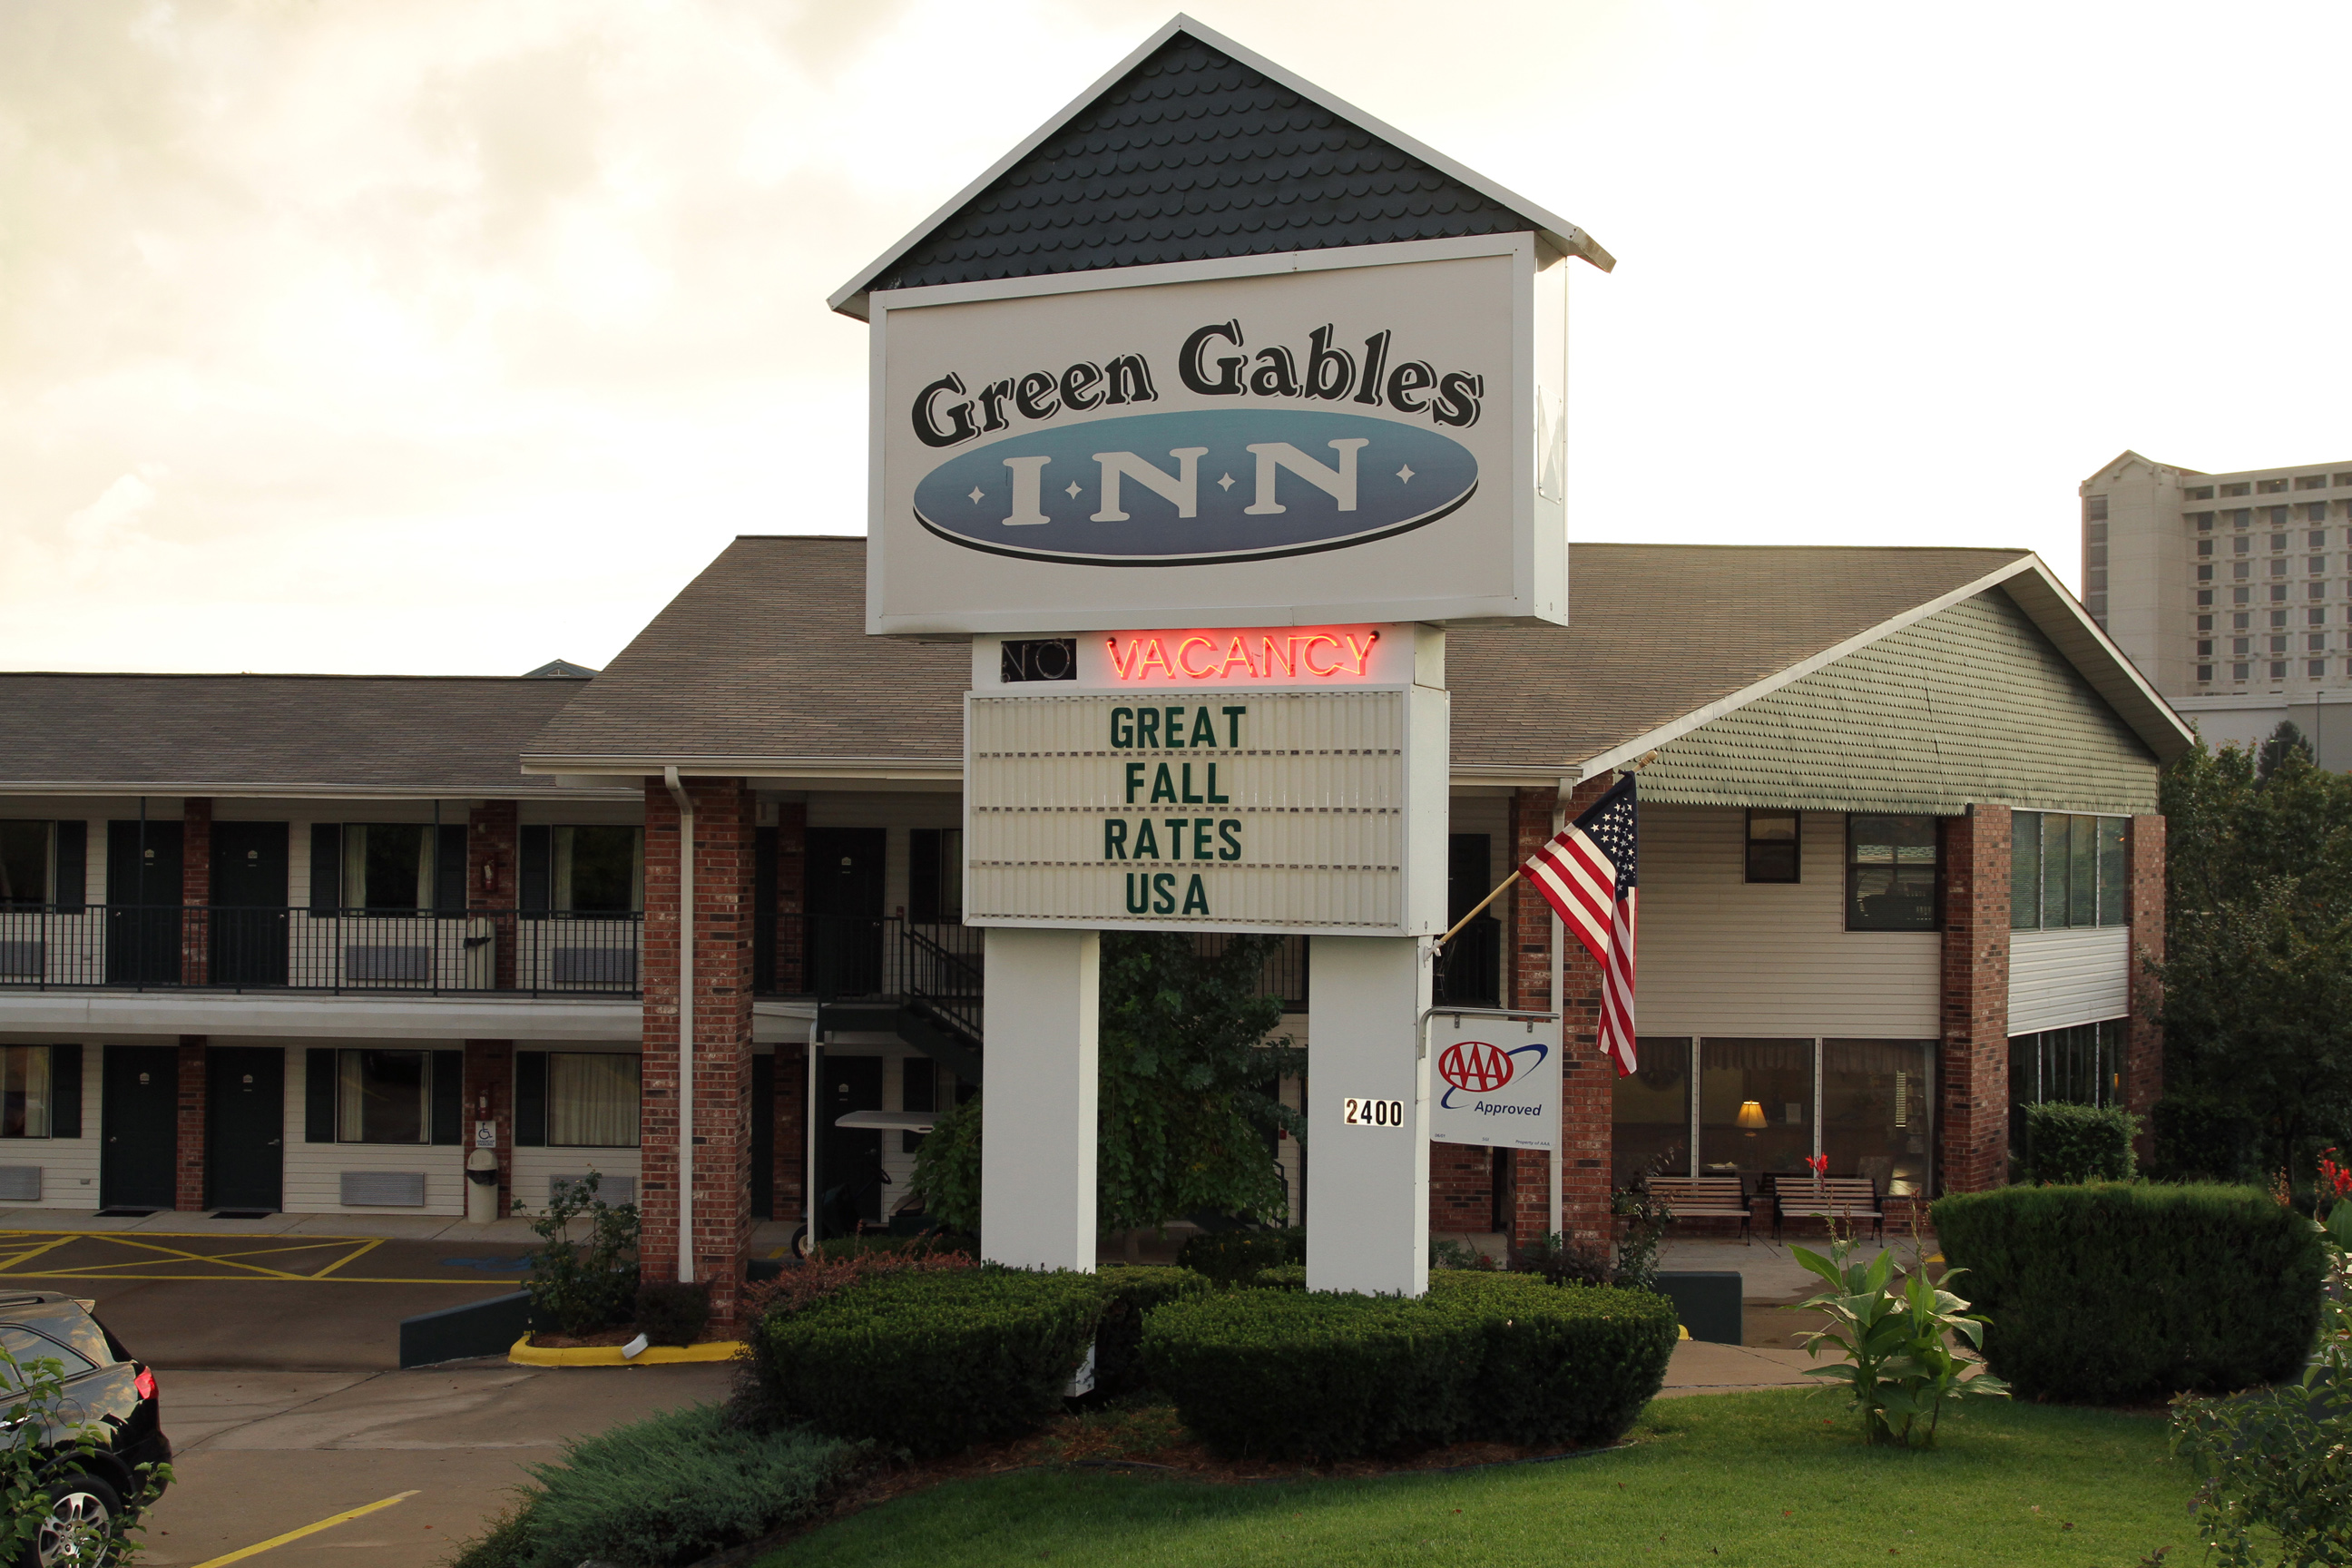 Green Gables Inn